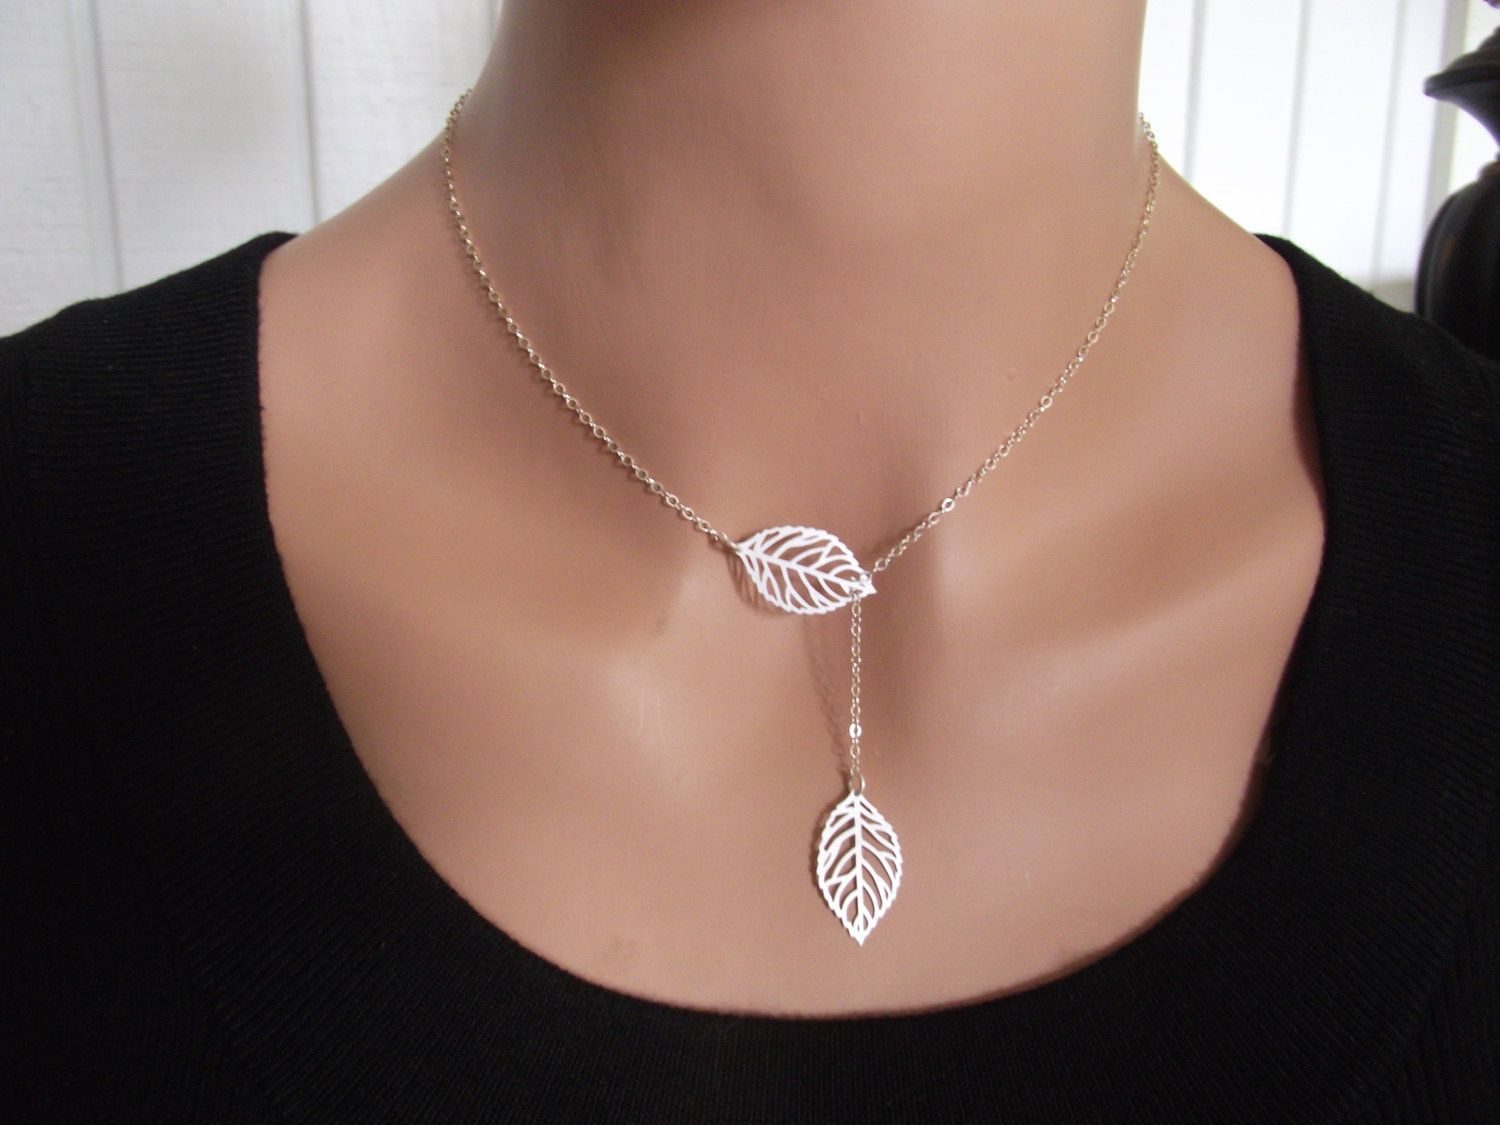 index cf gold p gs olive goldsilver eshop necklace leaves necklaces leaf ac detail ce bc en silver ba